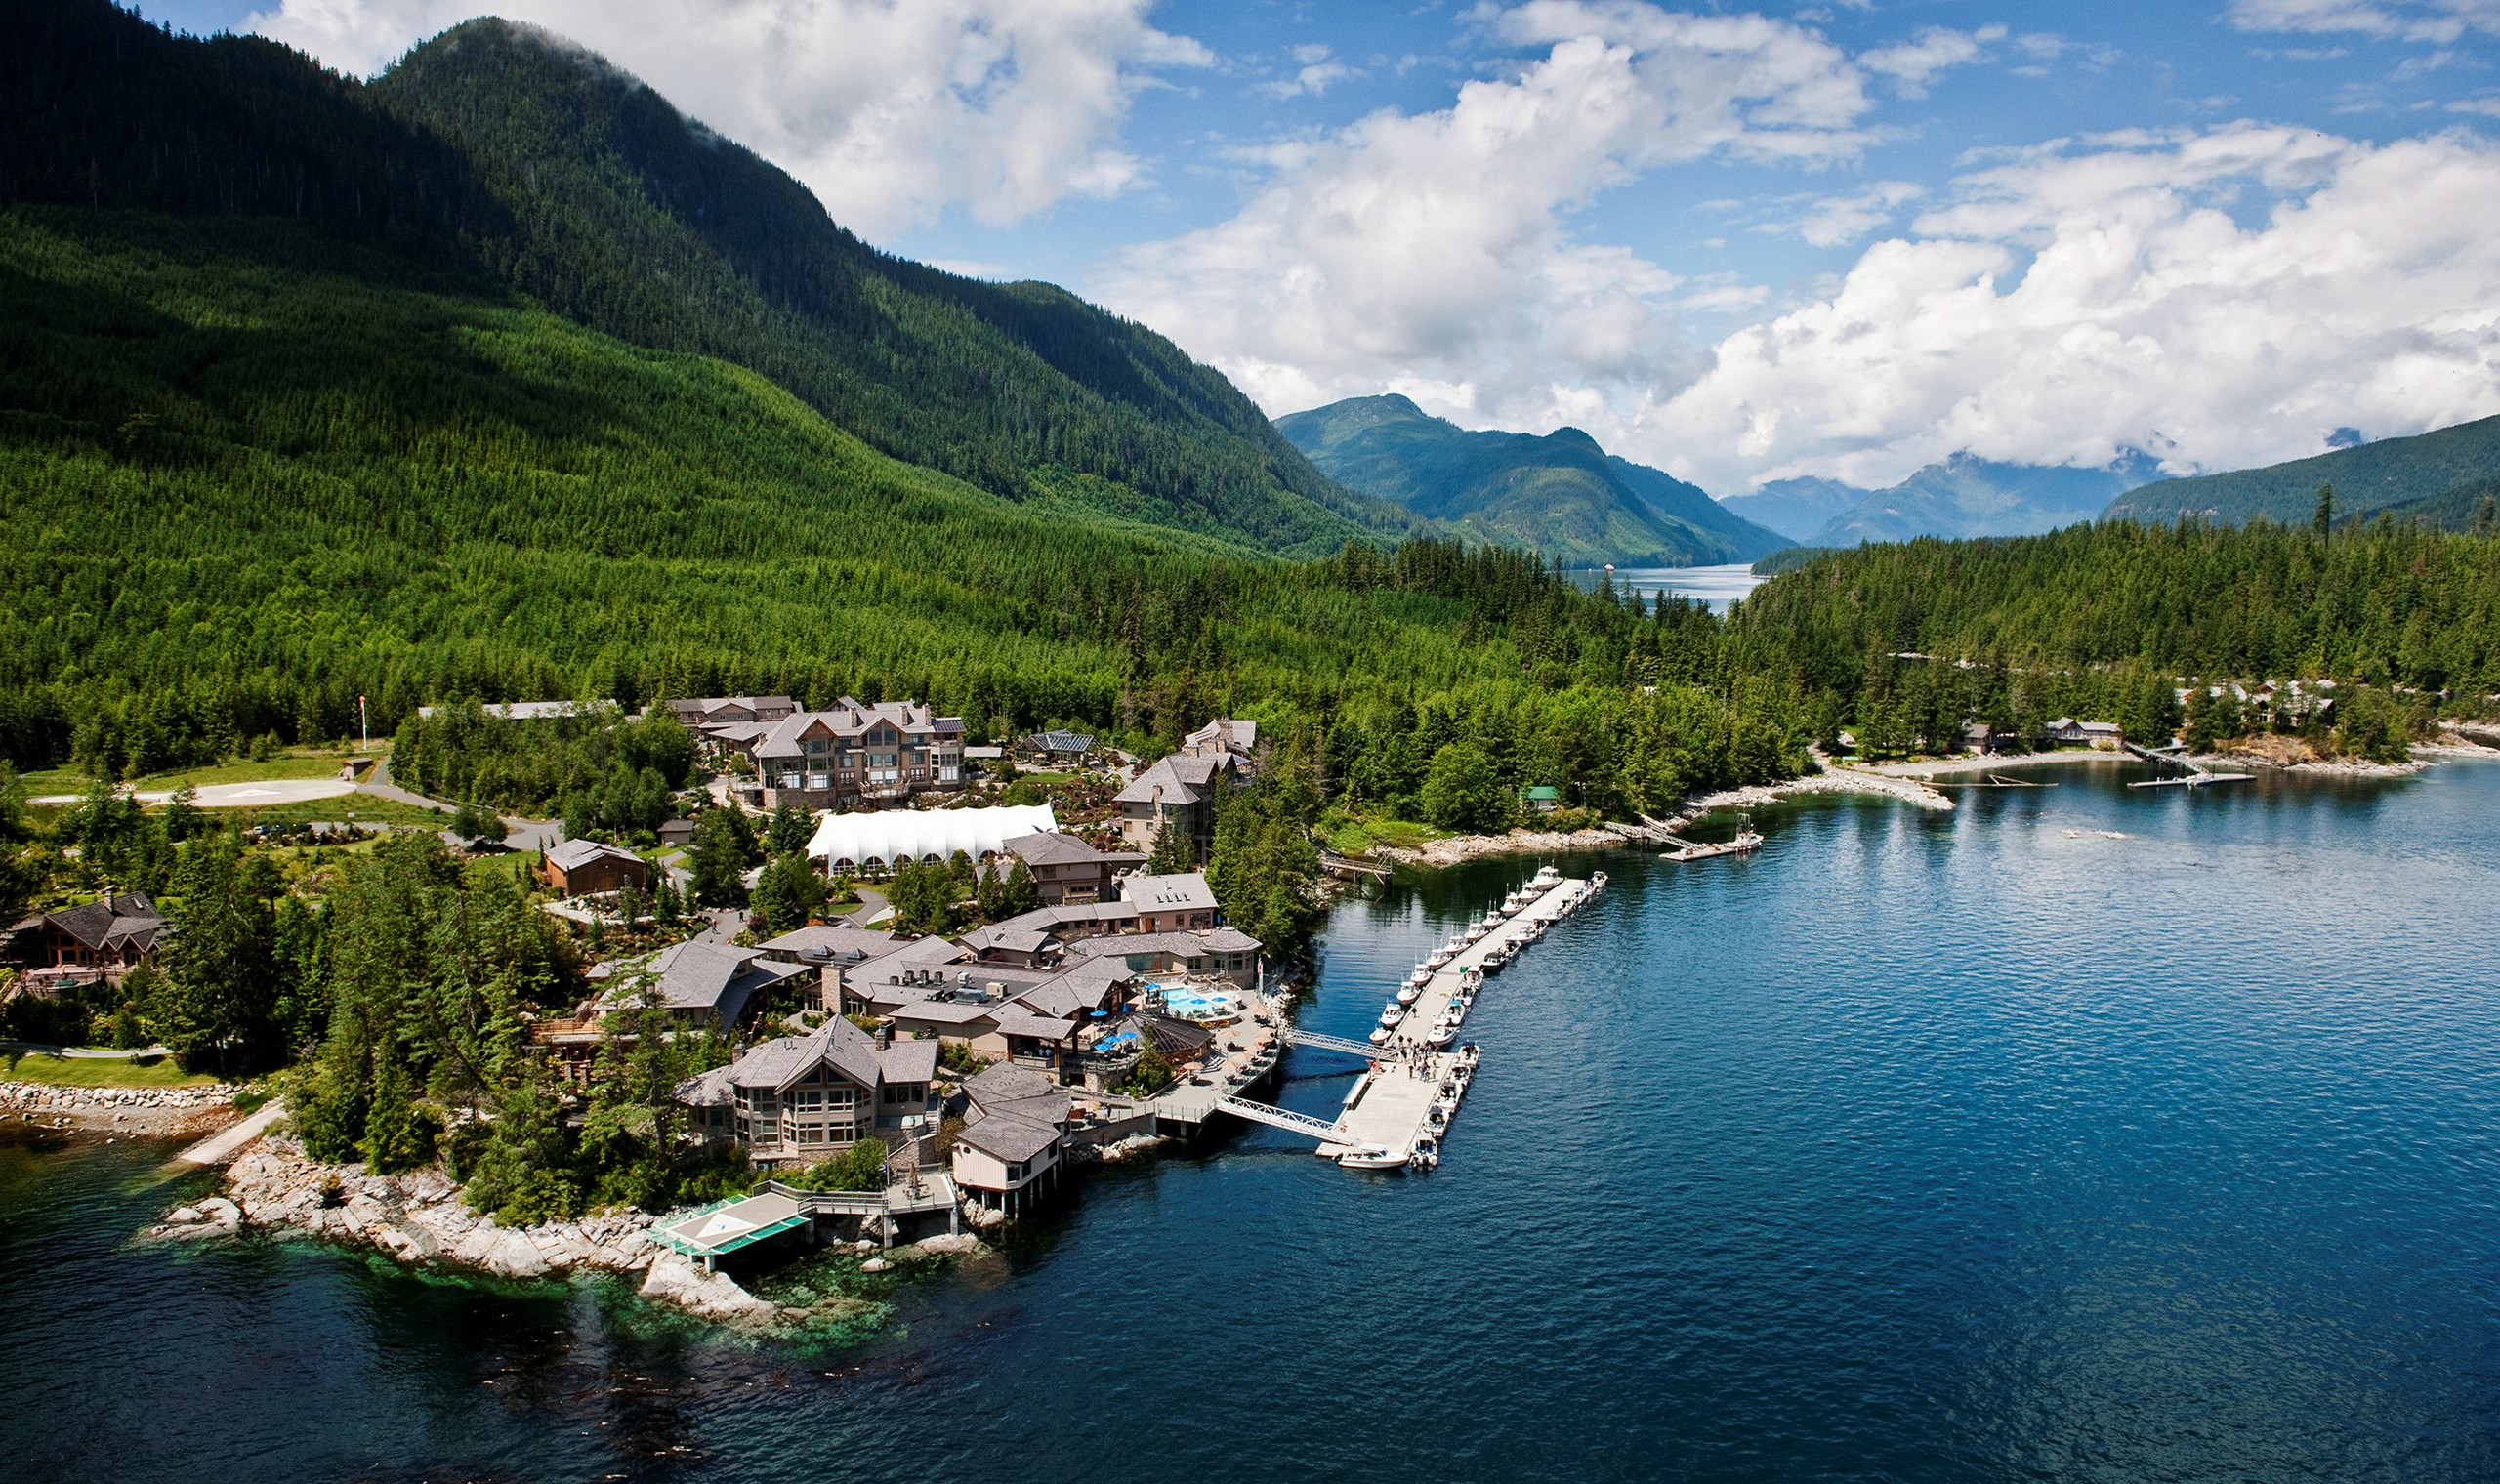 Flights To Vancouver Island From Gatwick